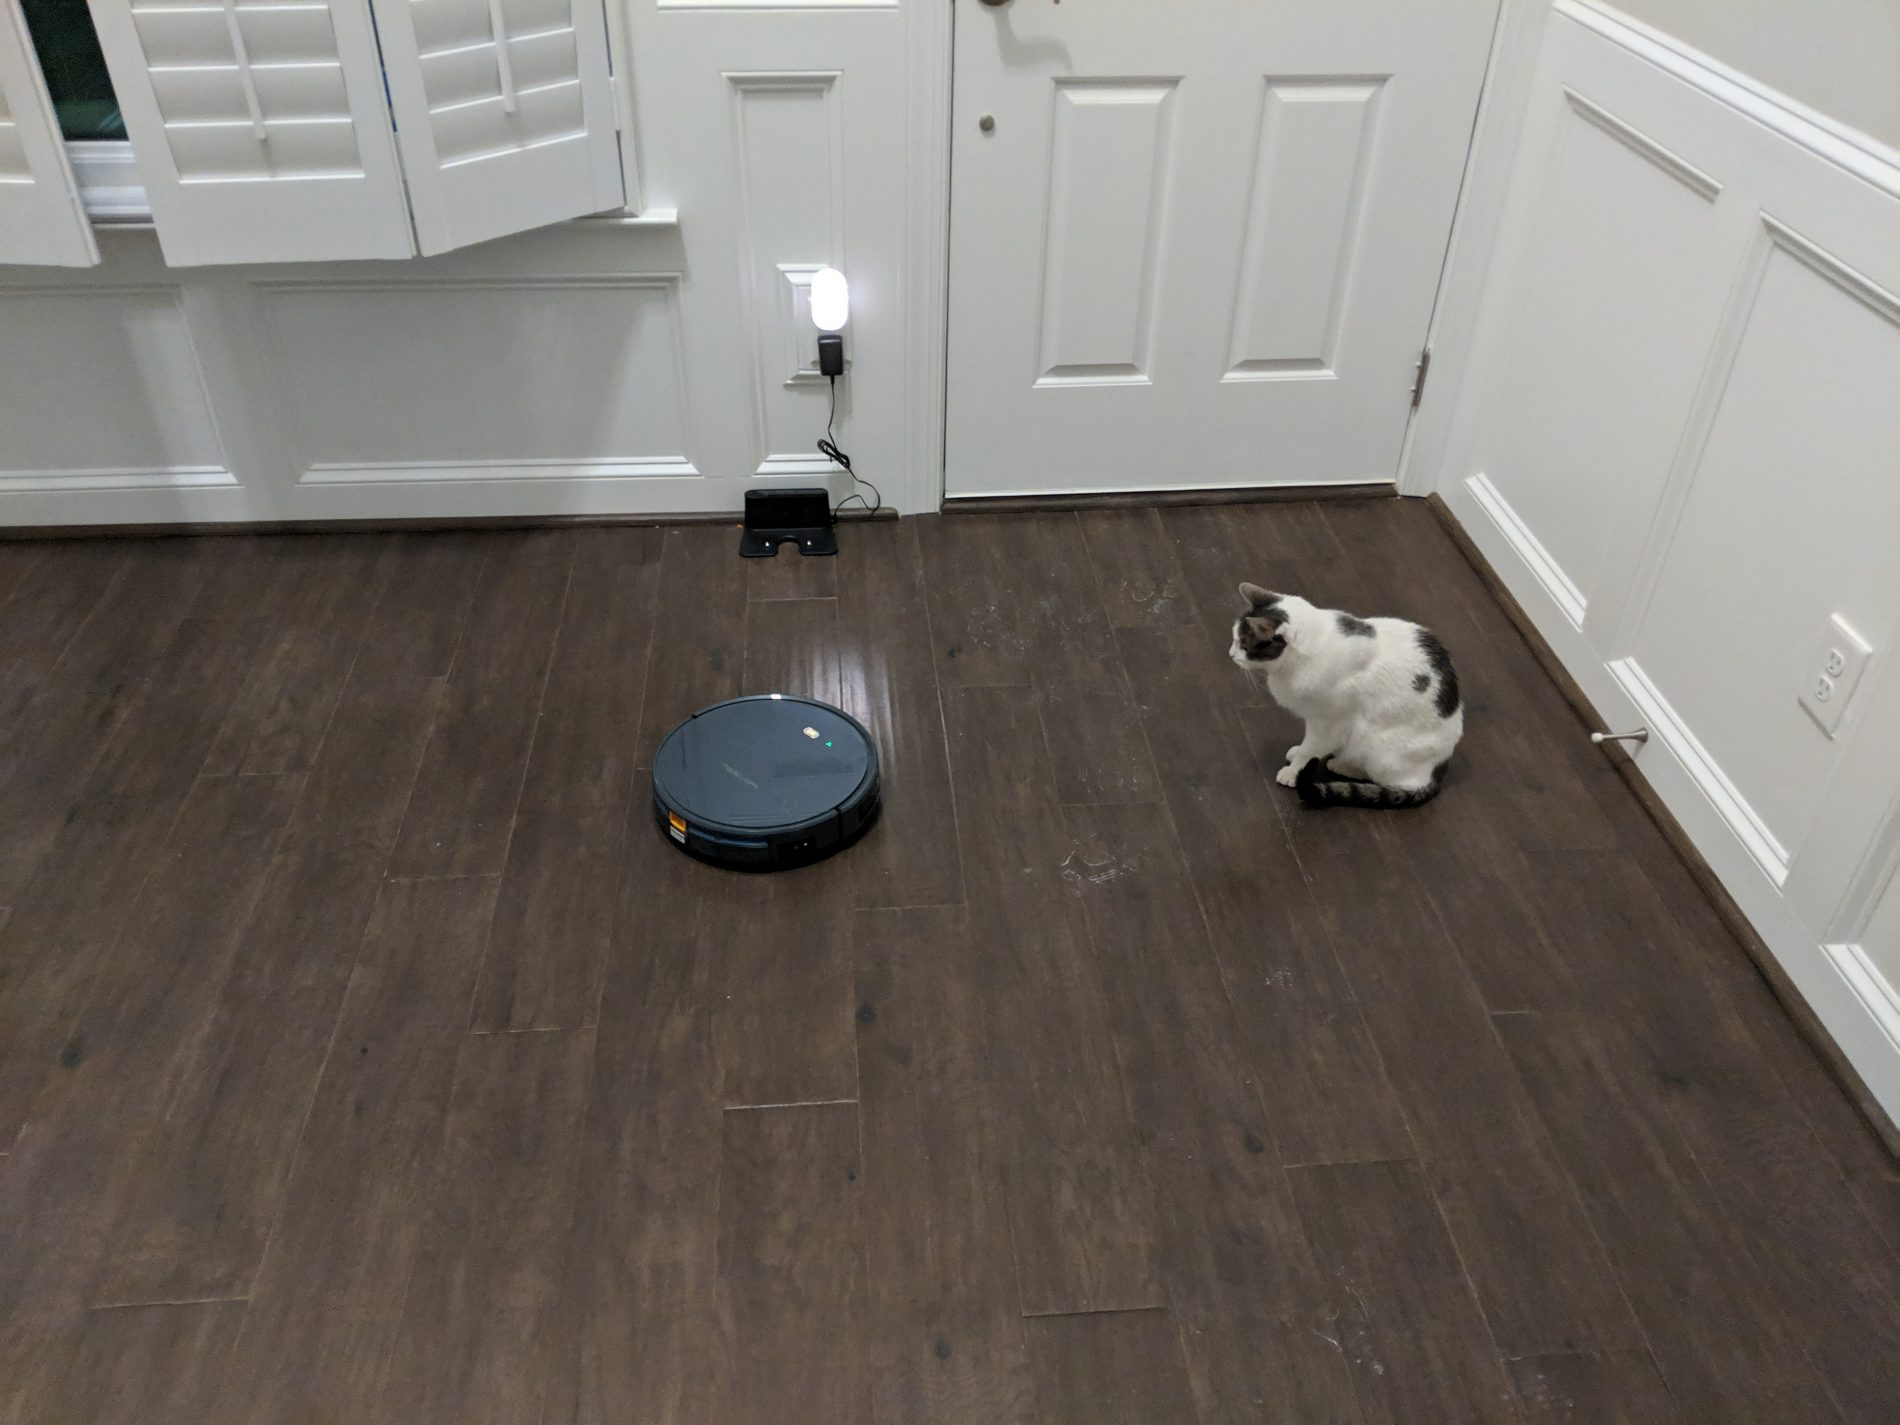 Tesvor X500 Robot Vacuum Review (KF-001YZH)